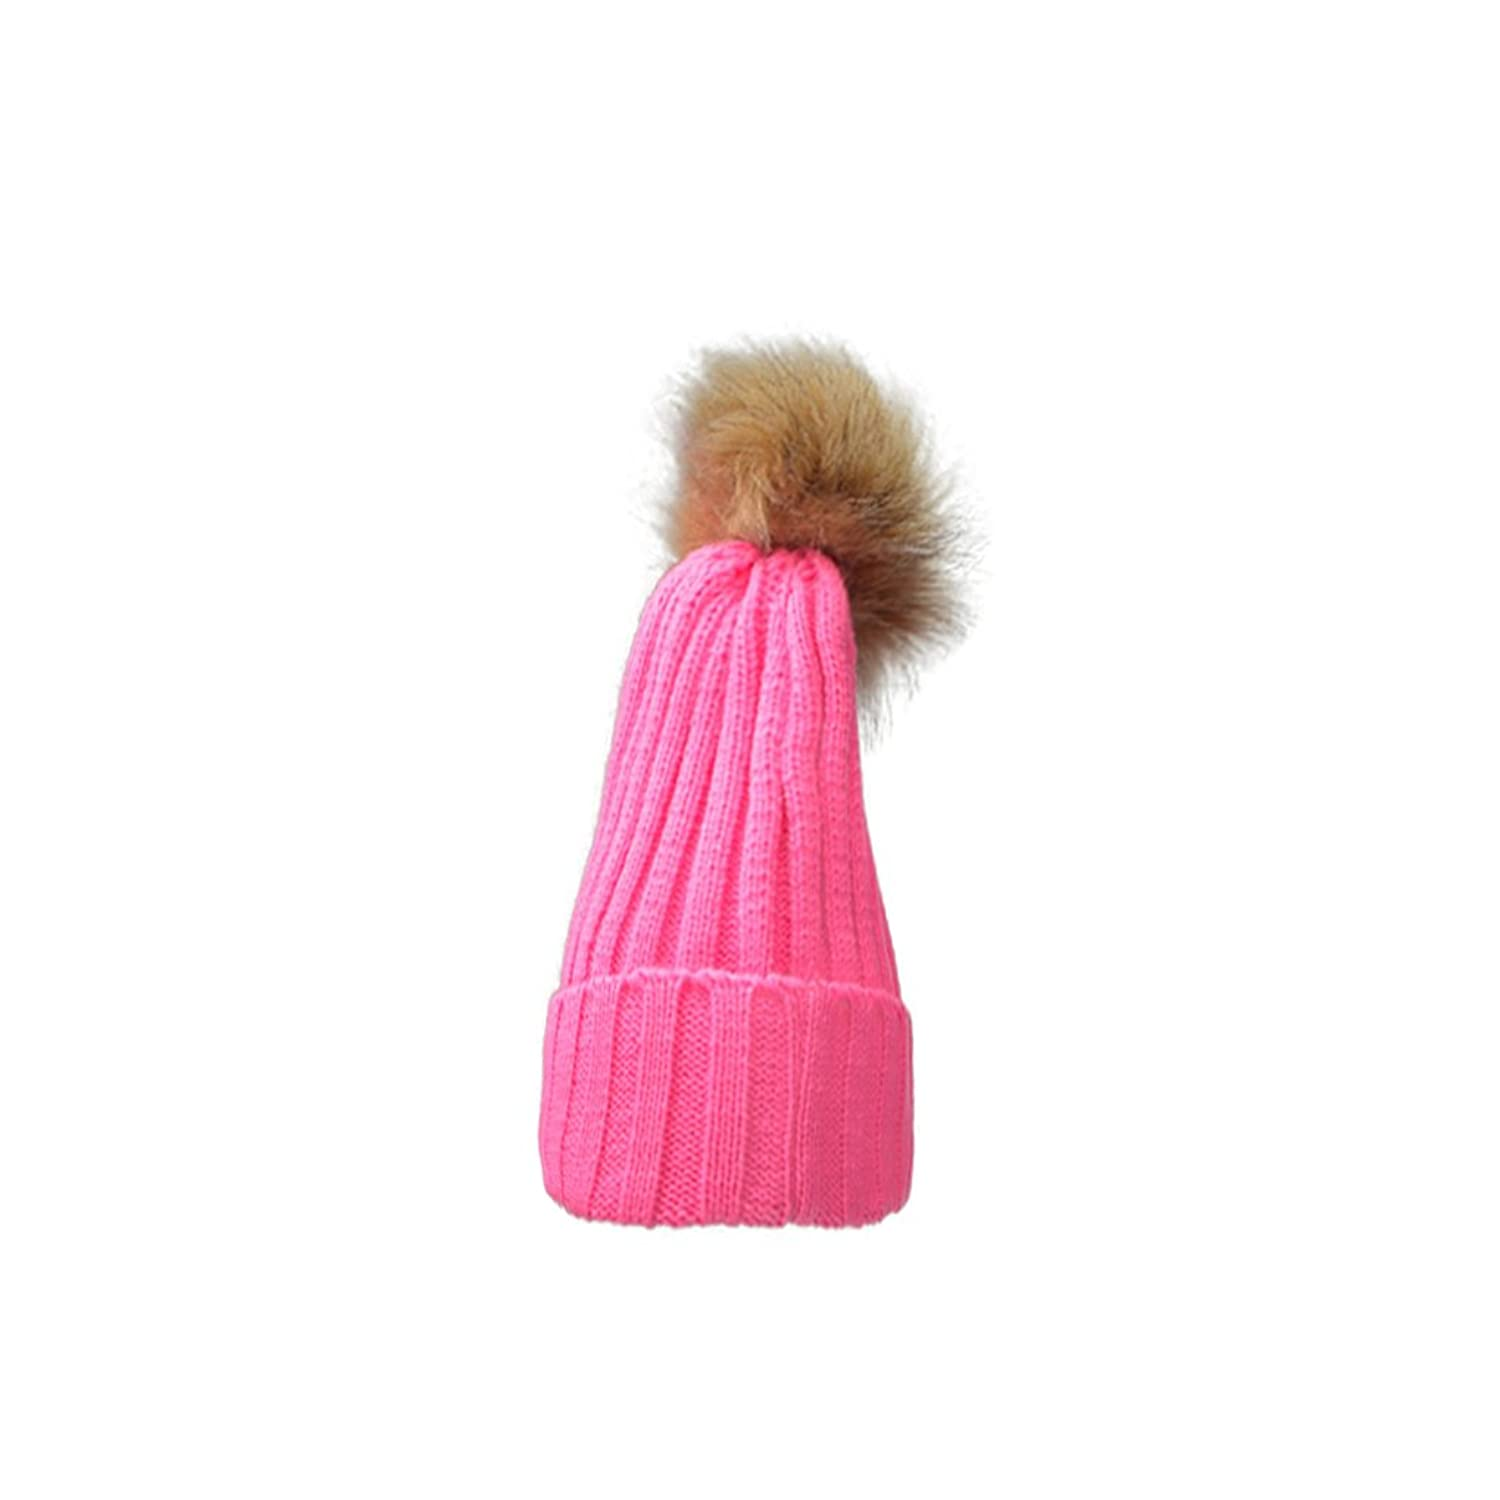 Runboo reizend Frauen-Winter-warme Geflochtene Crochet Knitting Hut-Mädchen Cap Beret Ski Beanie-Ball-Hut